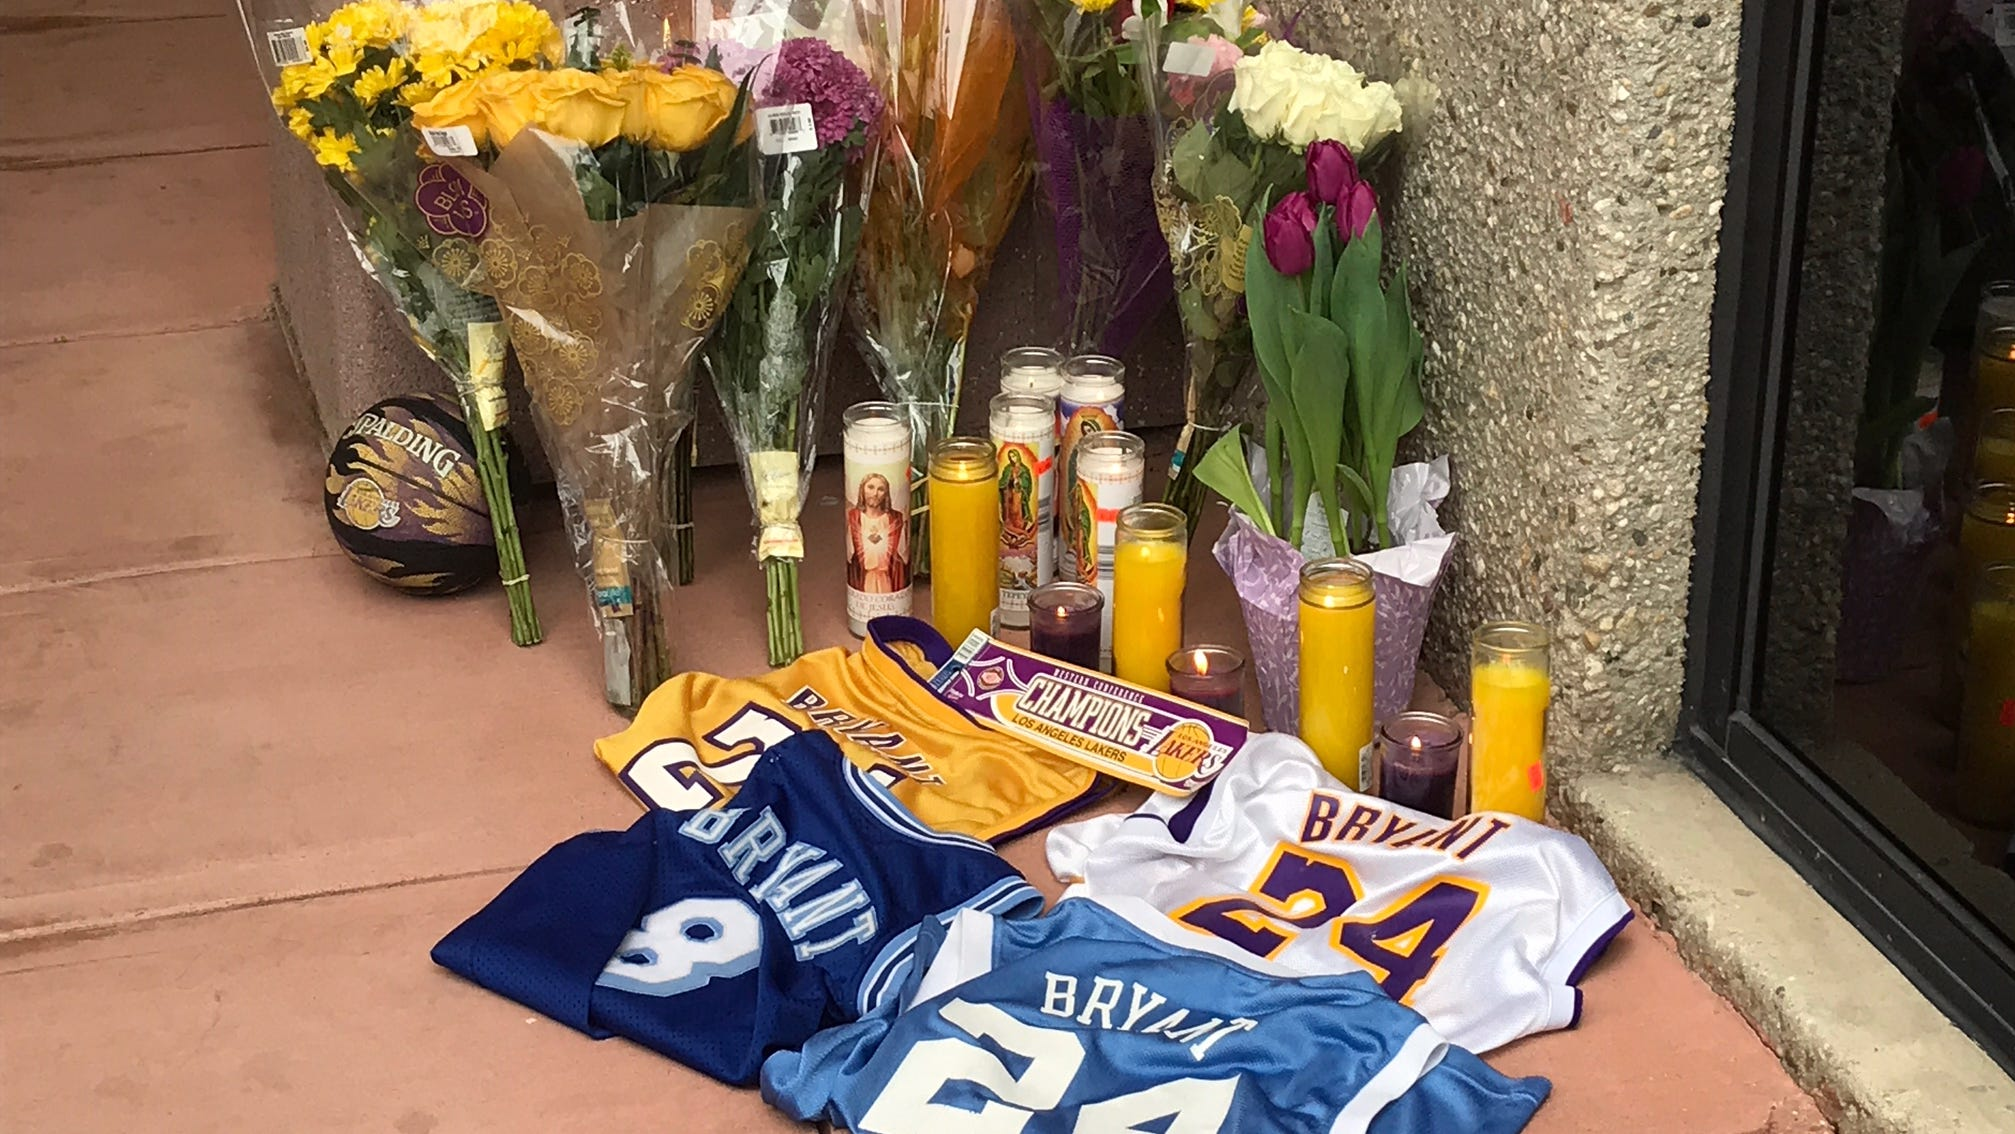 Kobe Bryant death: Shock, silence at Mamba Sports Academy